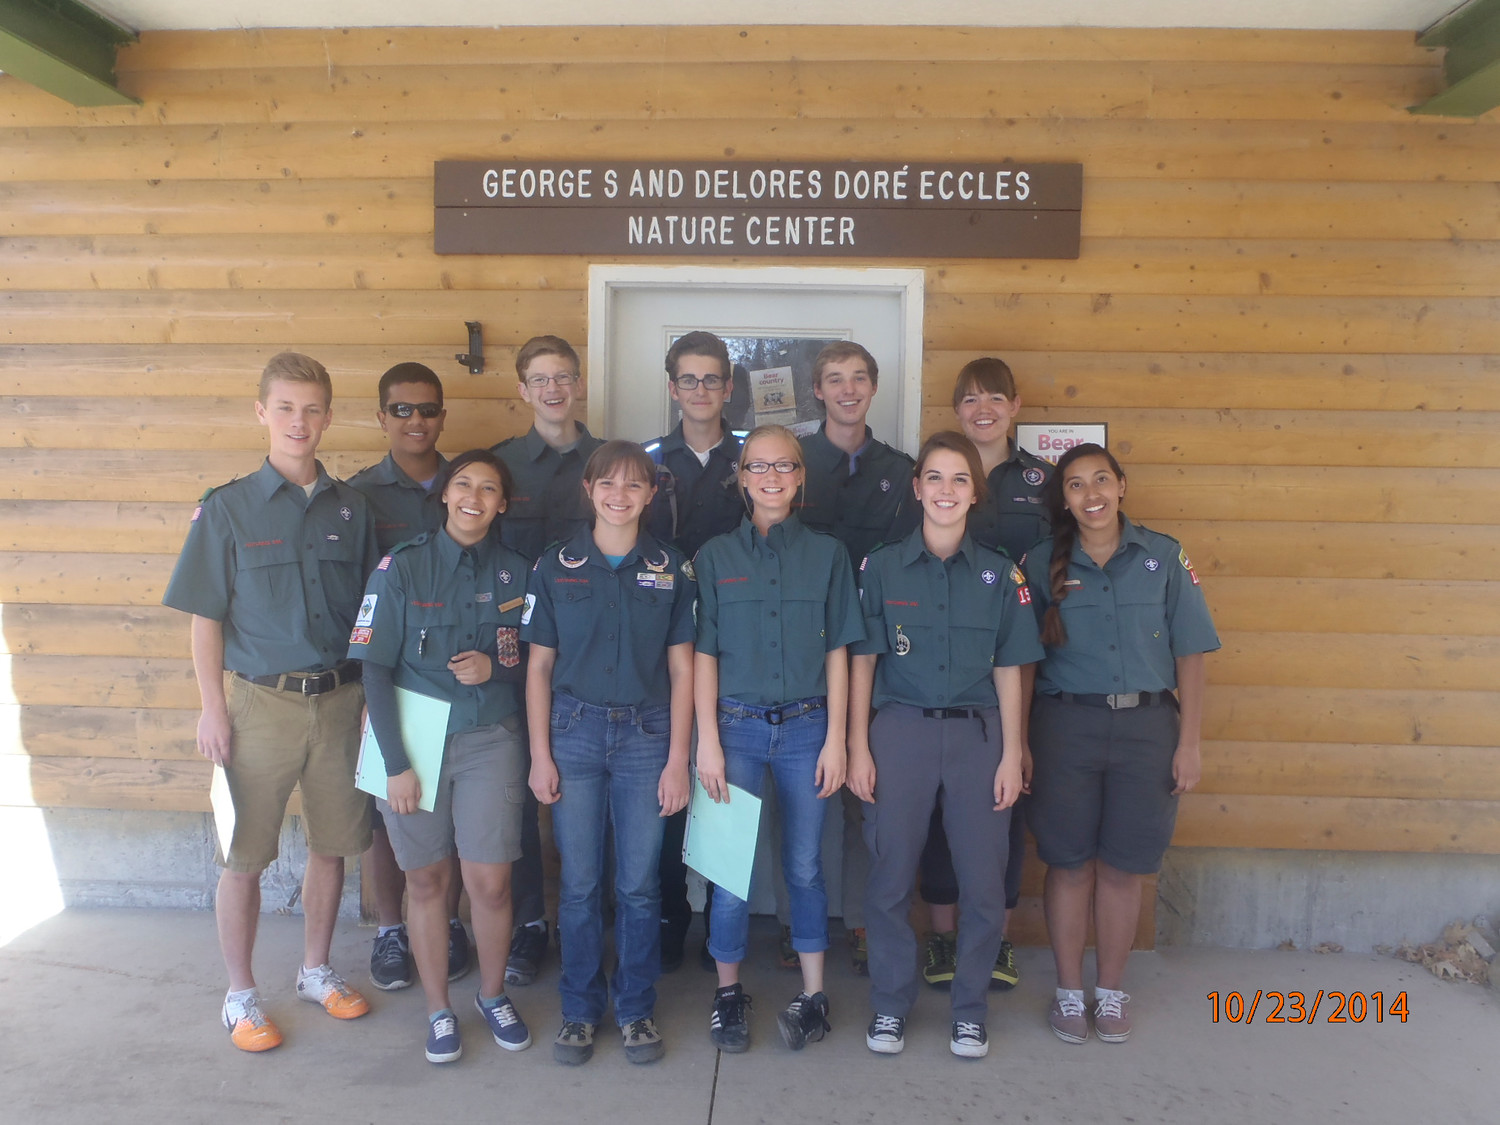 The Boy Scouts will allow girls to join Cub Scout packs next year and then create a path to Eagle Scout. Above, members of the BSA's co-ed Venturing Program.